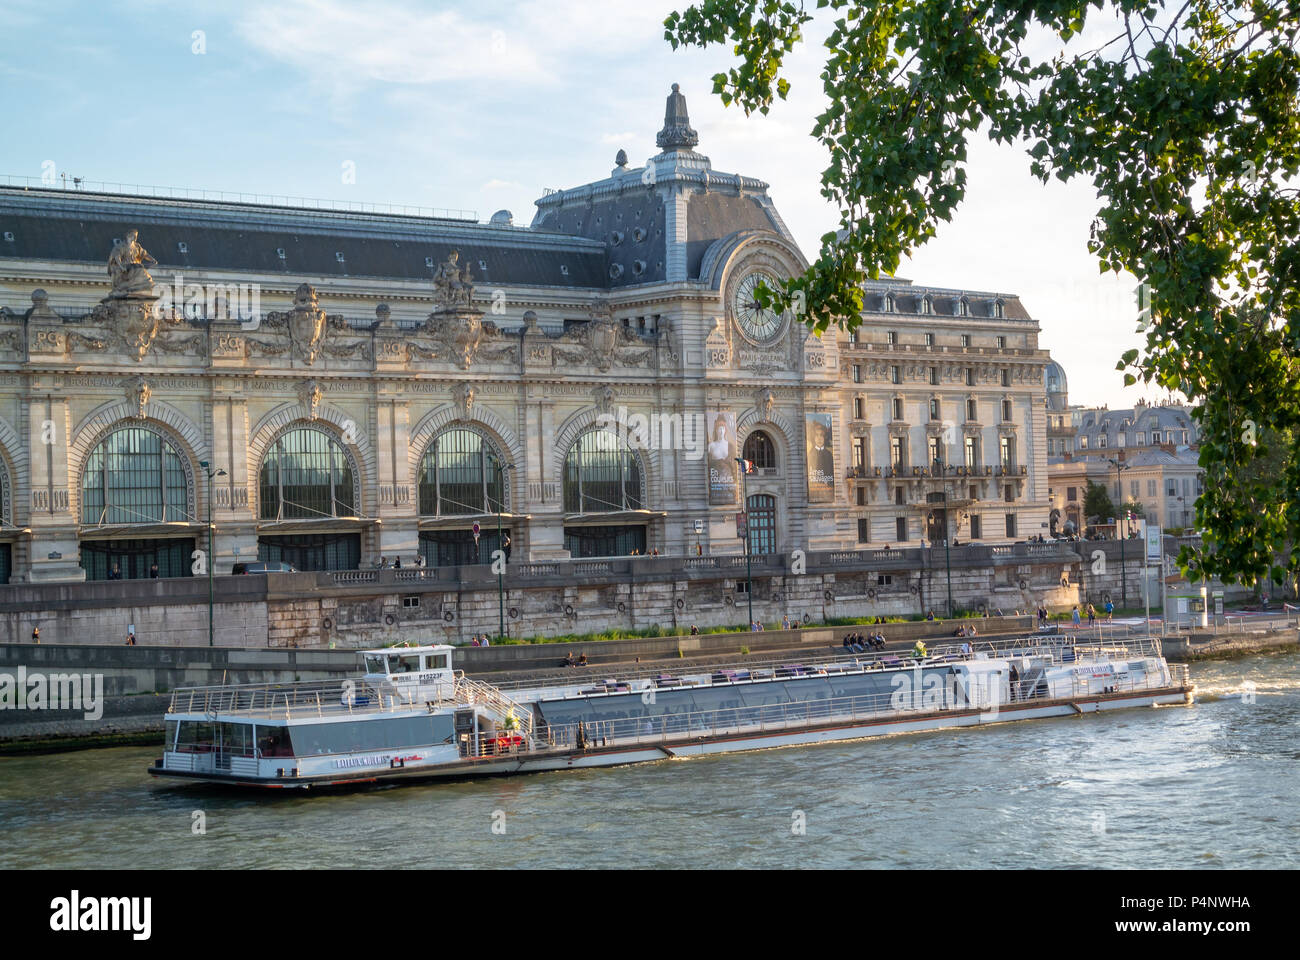 Orsay museum, Musee d'orsay which is a former Gare d'Orsay on Seine river, Paris, IDF, France - Stock Image